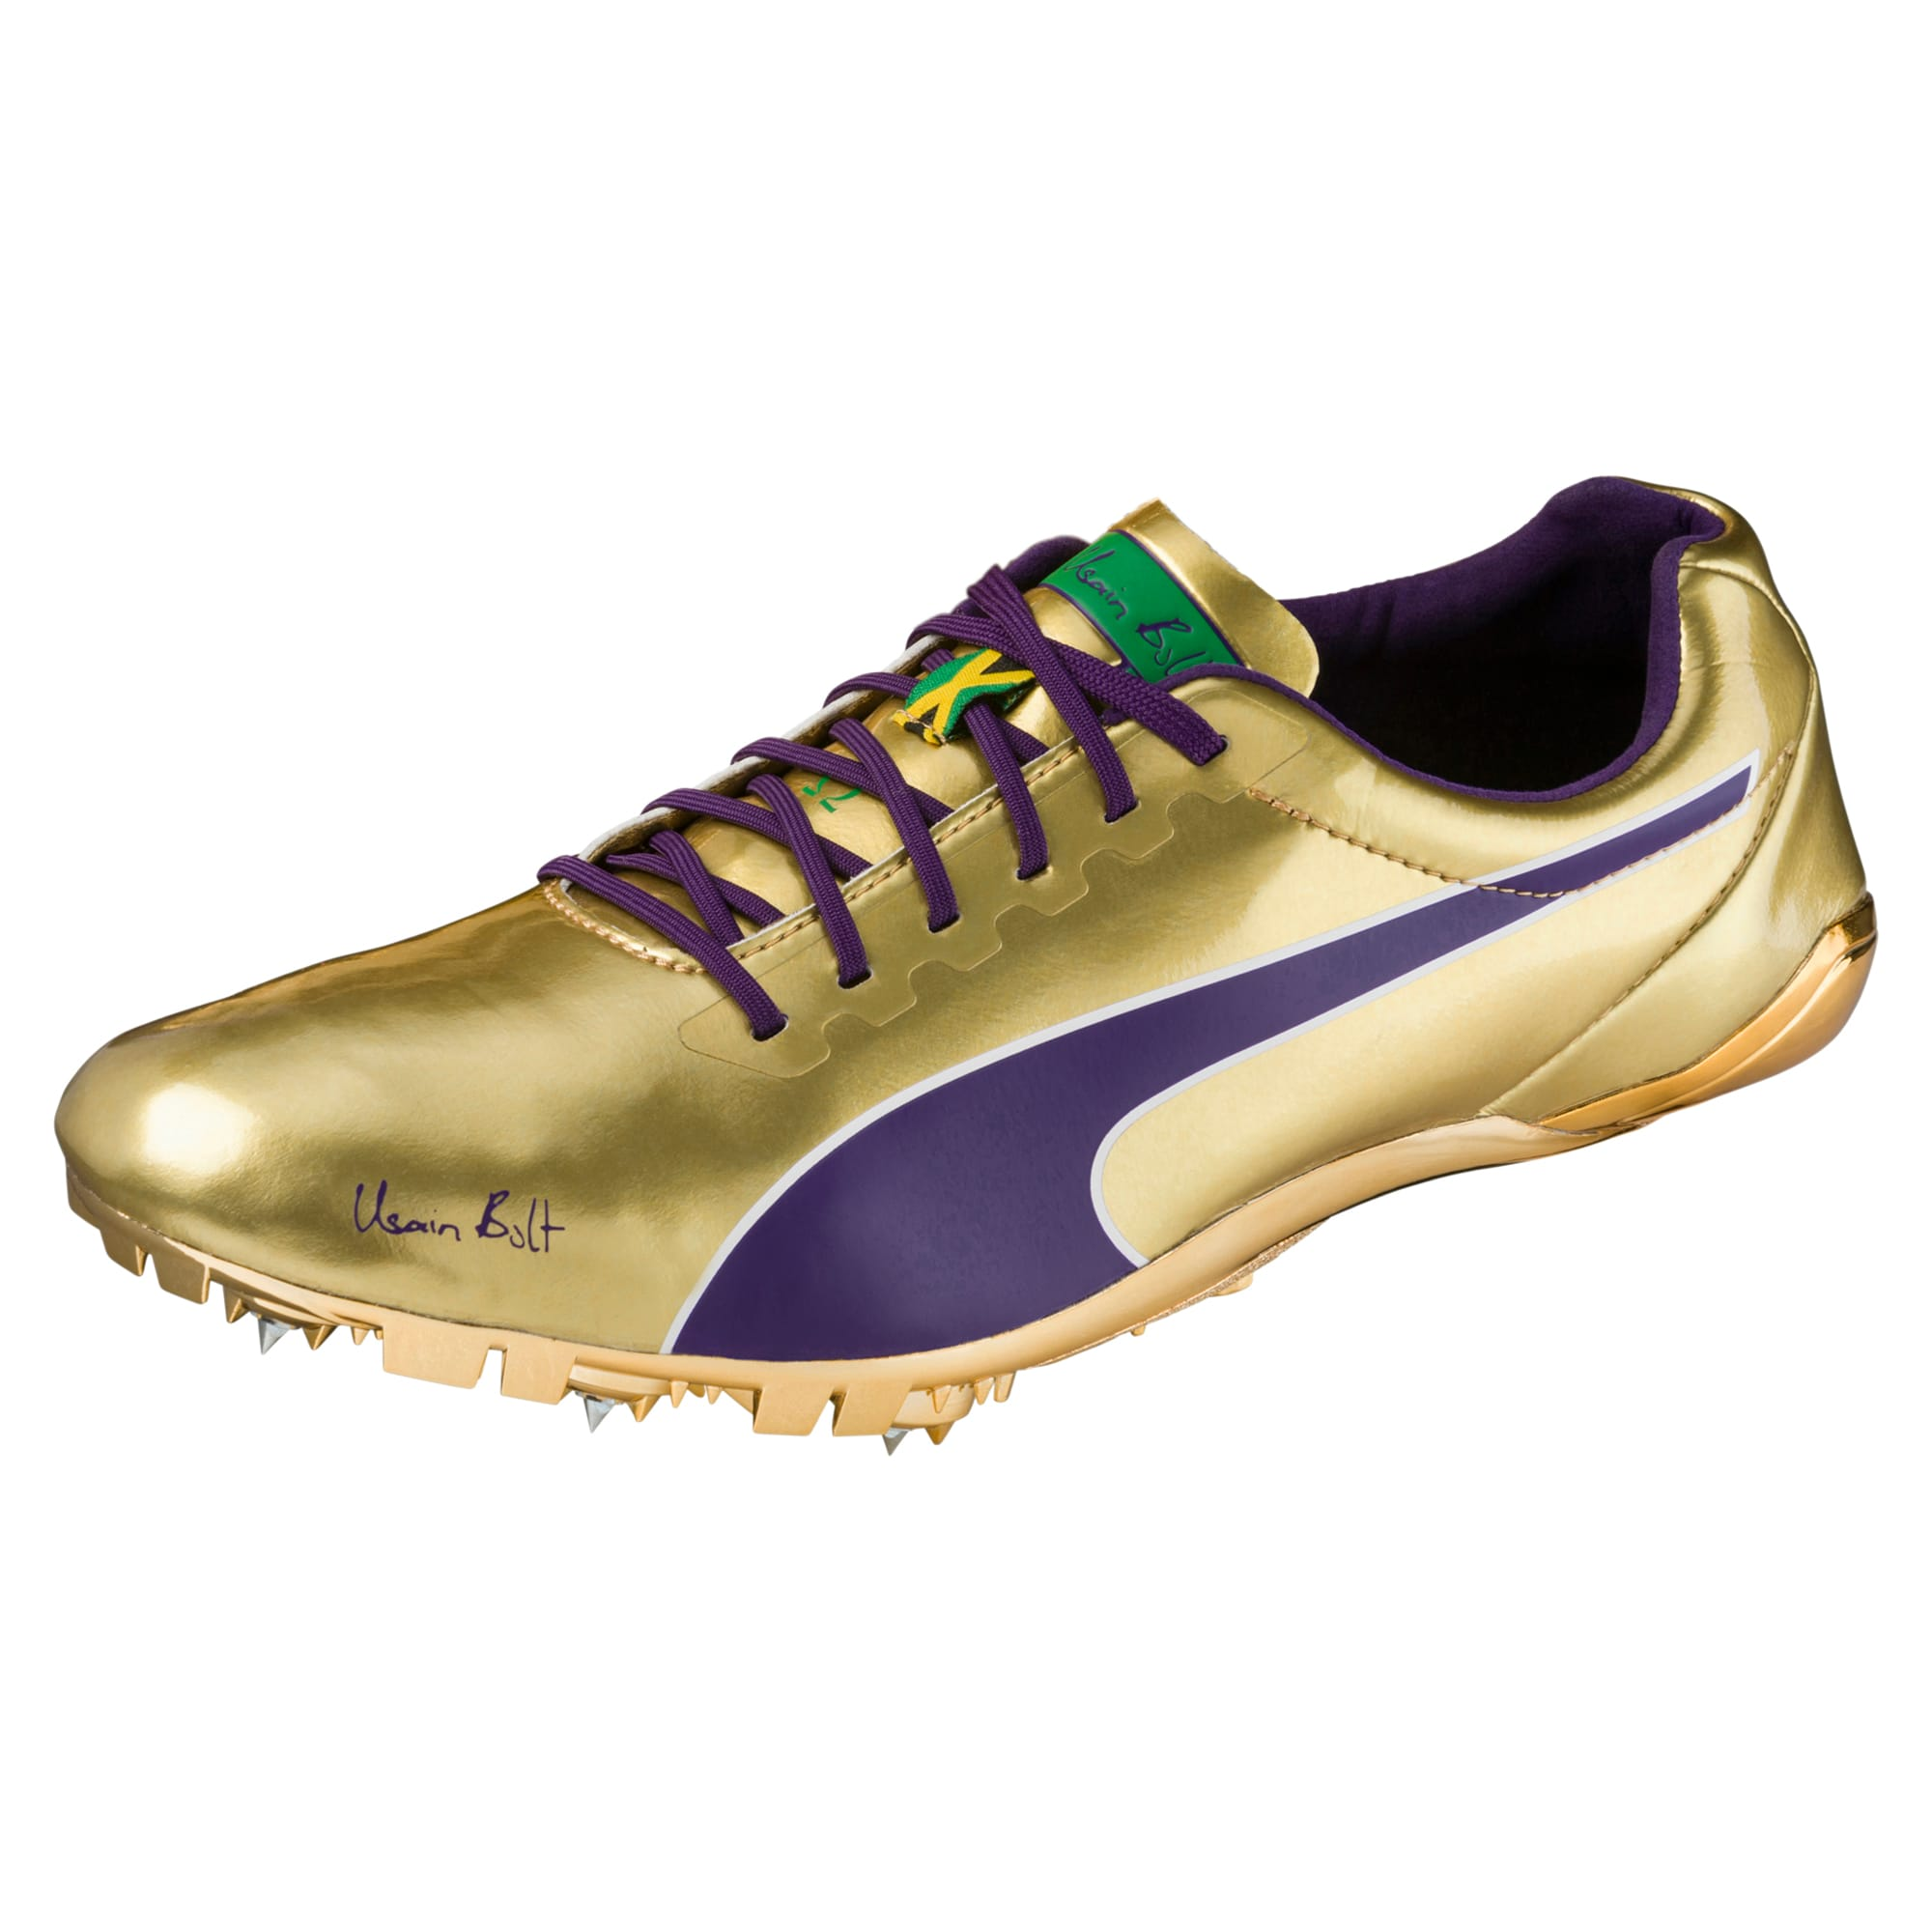 Bolt evoSPEED Electric Legacy Spike Shoes